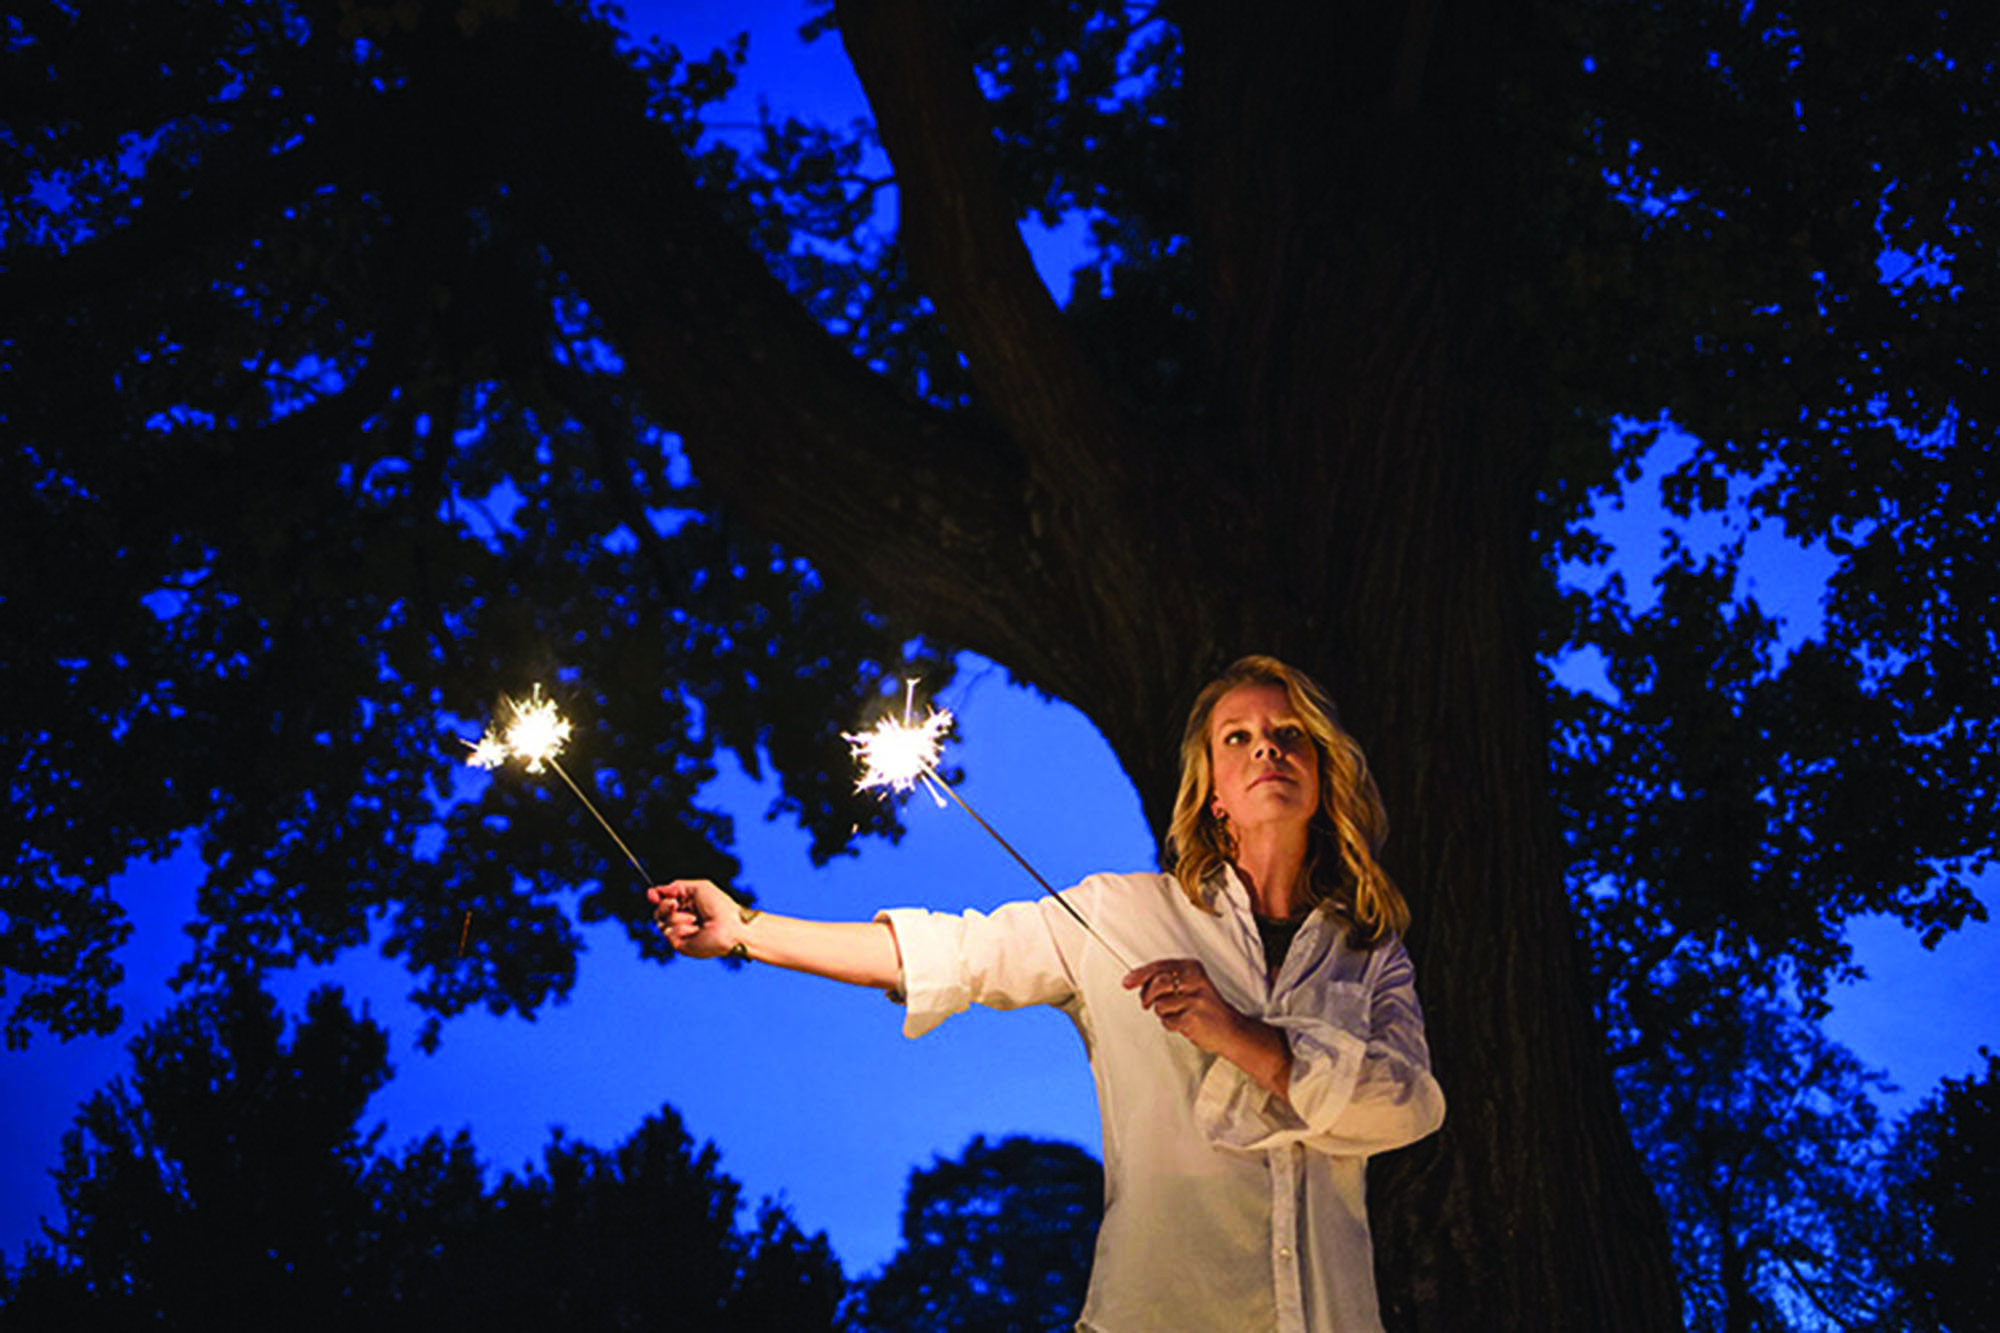 Mary Chapin Carpenter holds sparklers for a night photo